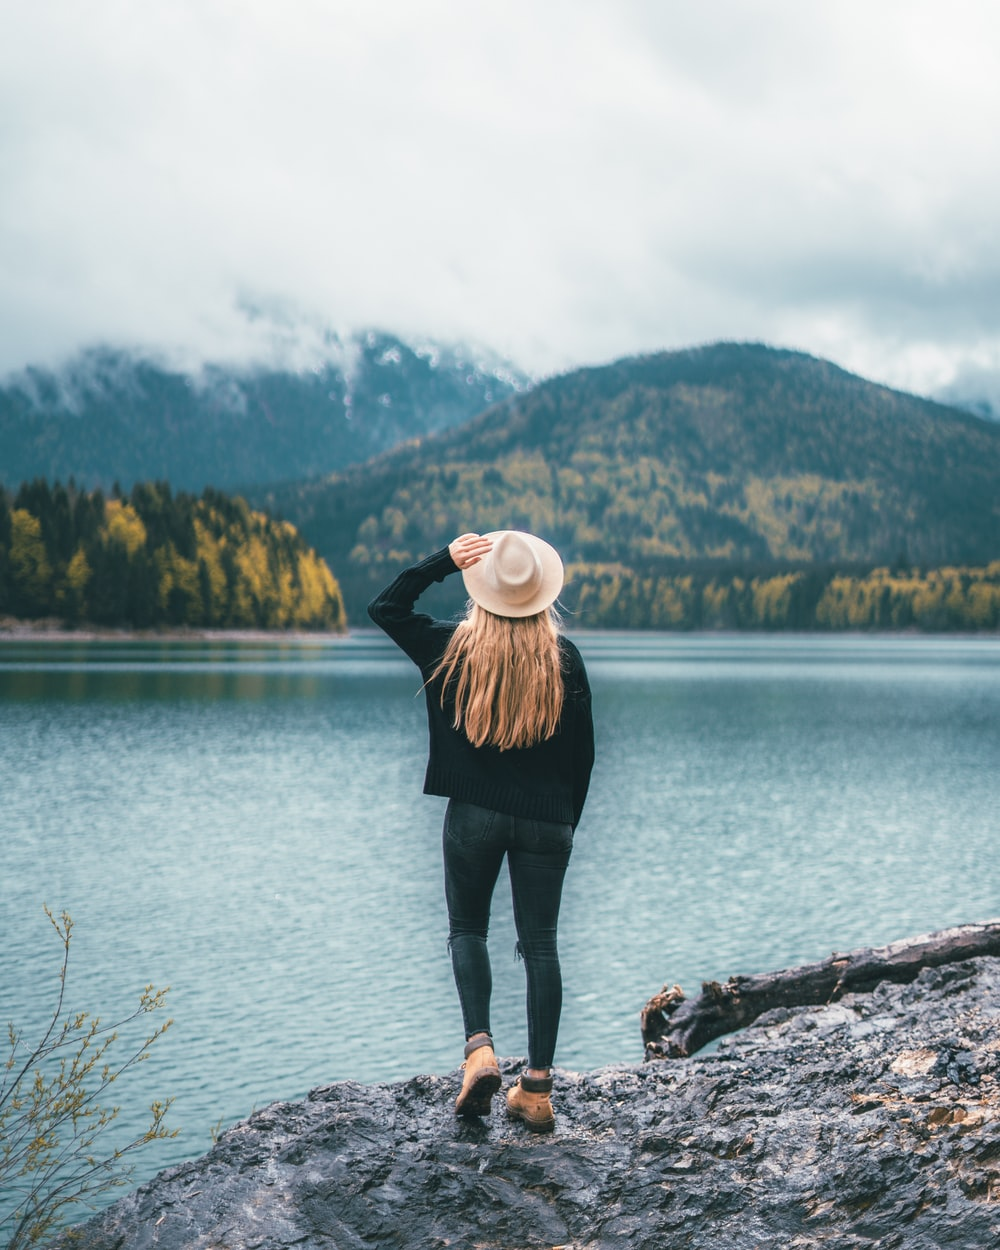 woman in white hat, black jacket, and blue jeans standing near body of water